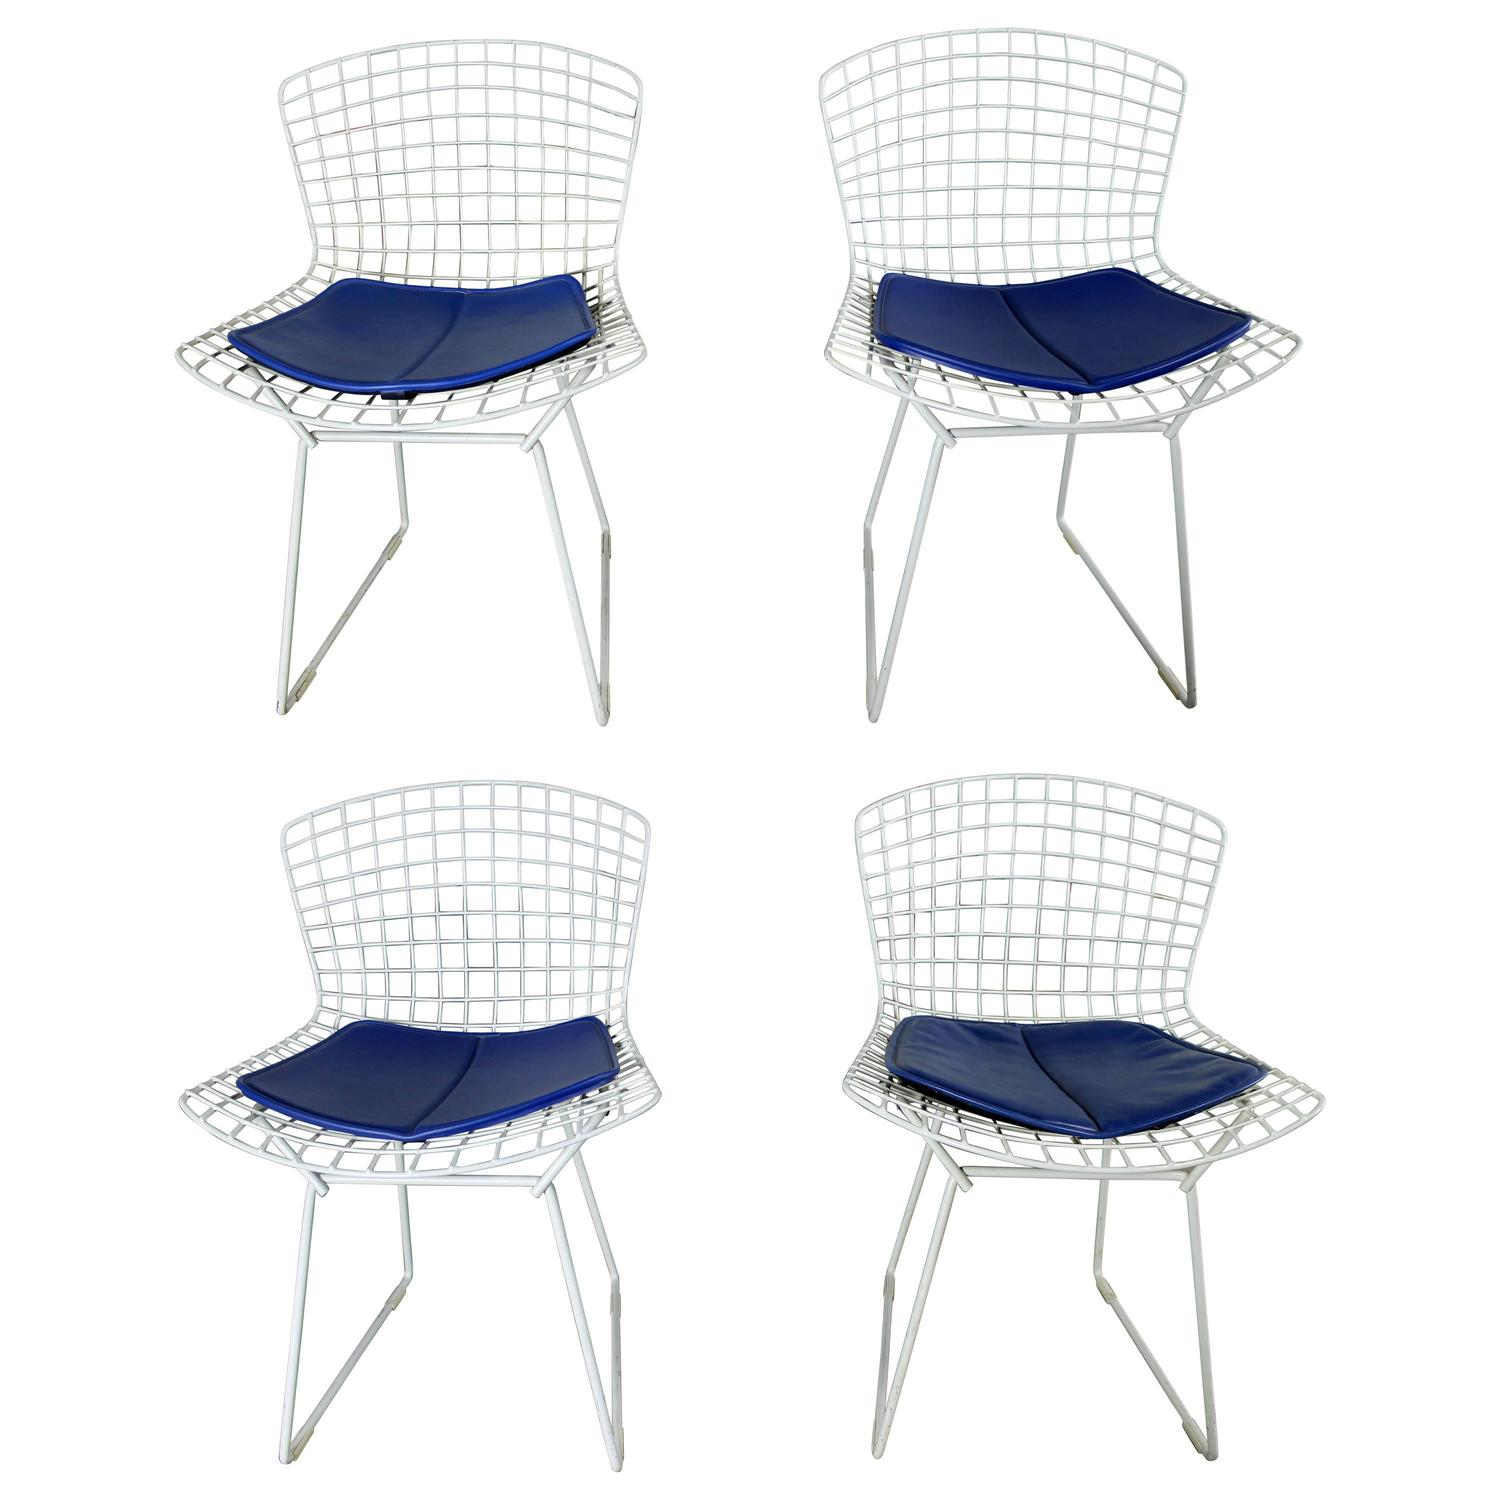 Bertoia diamond chair dimensions - Four Mid Century Modern Bertoia White Wire Side Chairs For Sale At 1stdibs